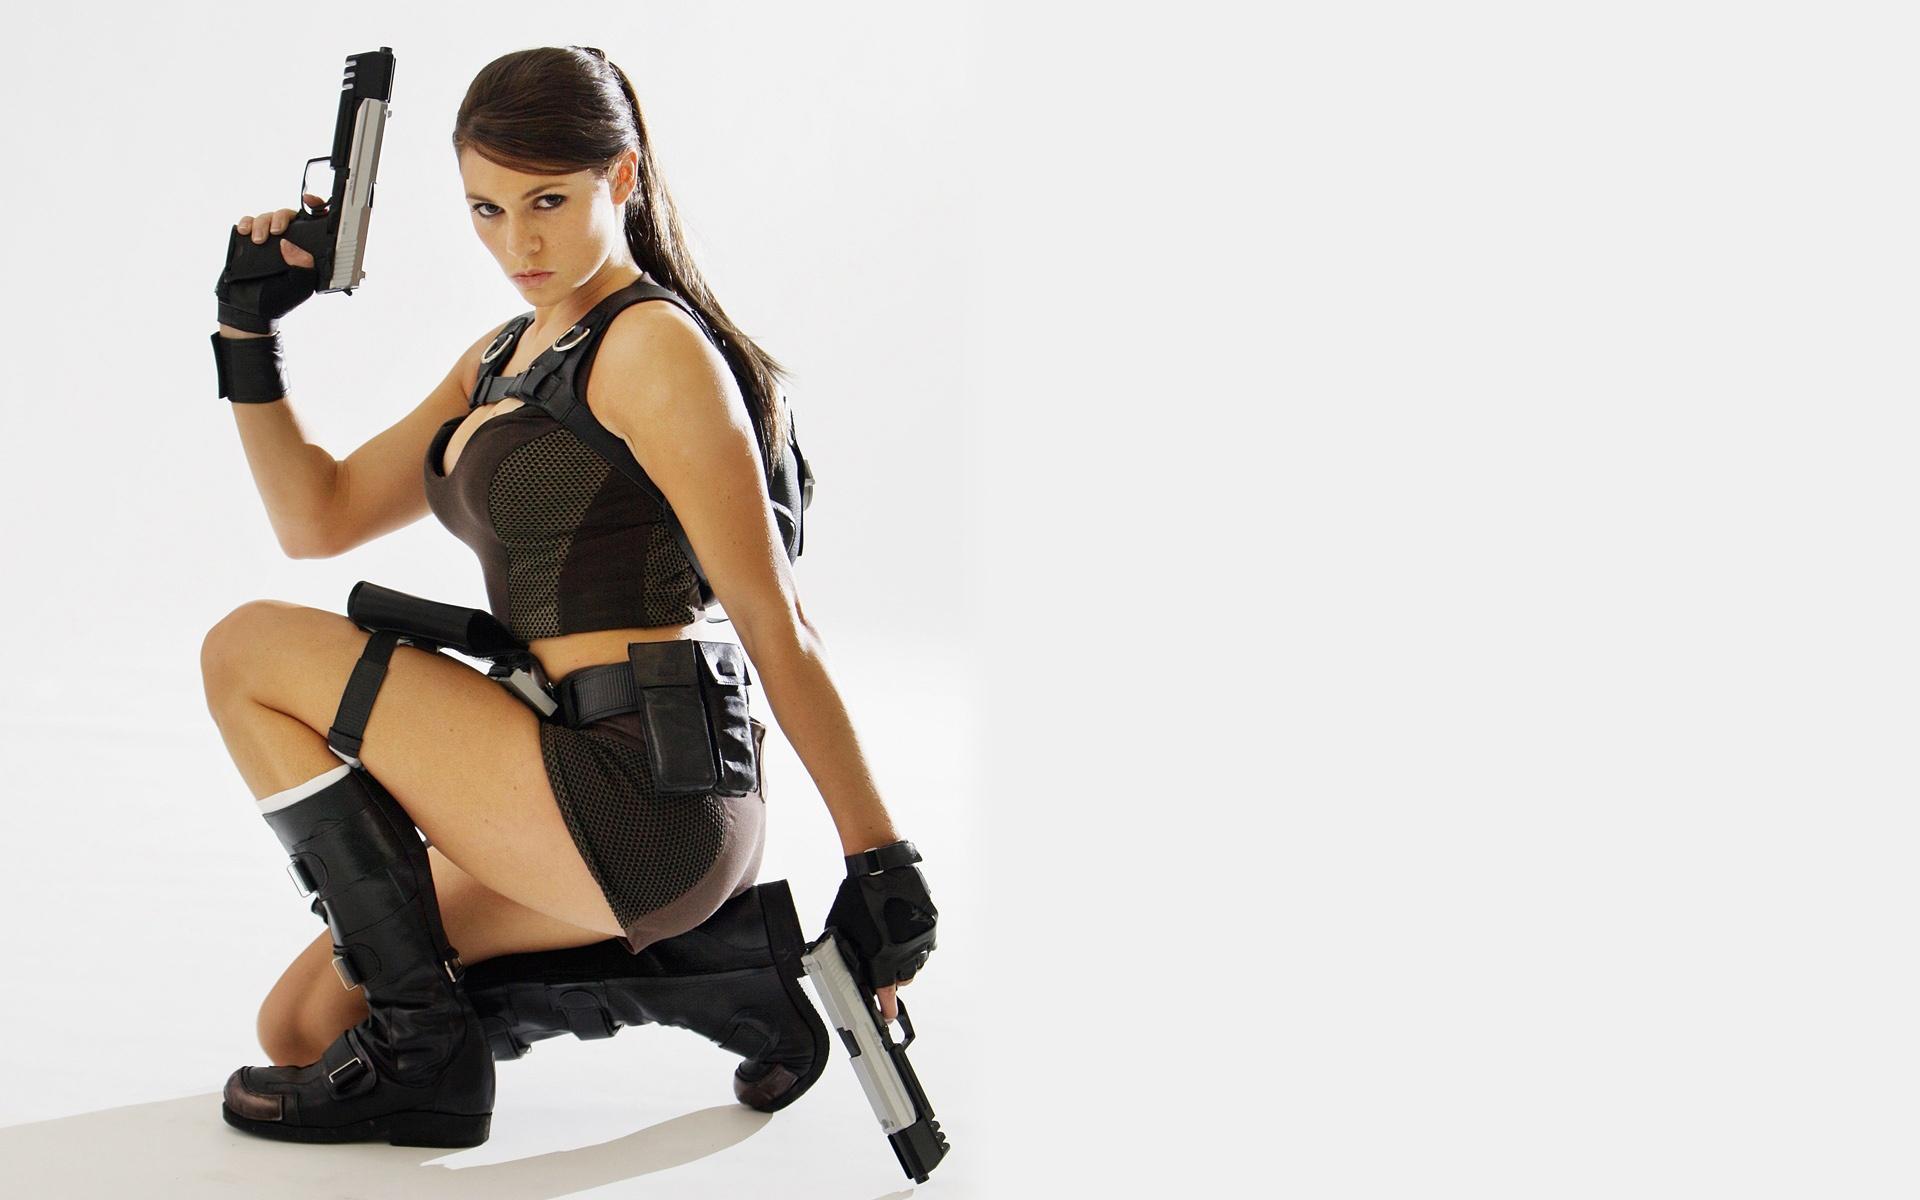 1920x1200 Alison Carroll as Tomb Raider desktop wallpapers and stock photos